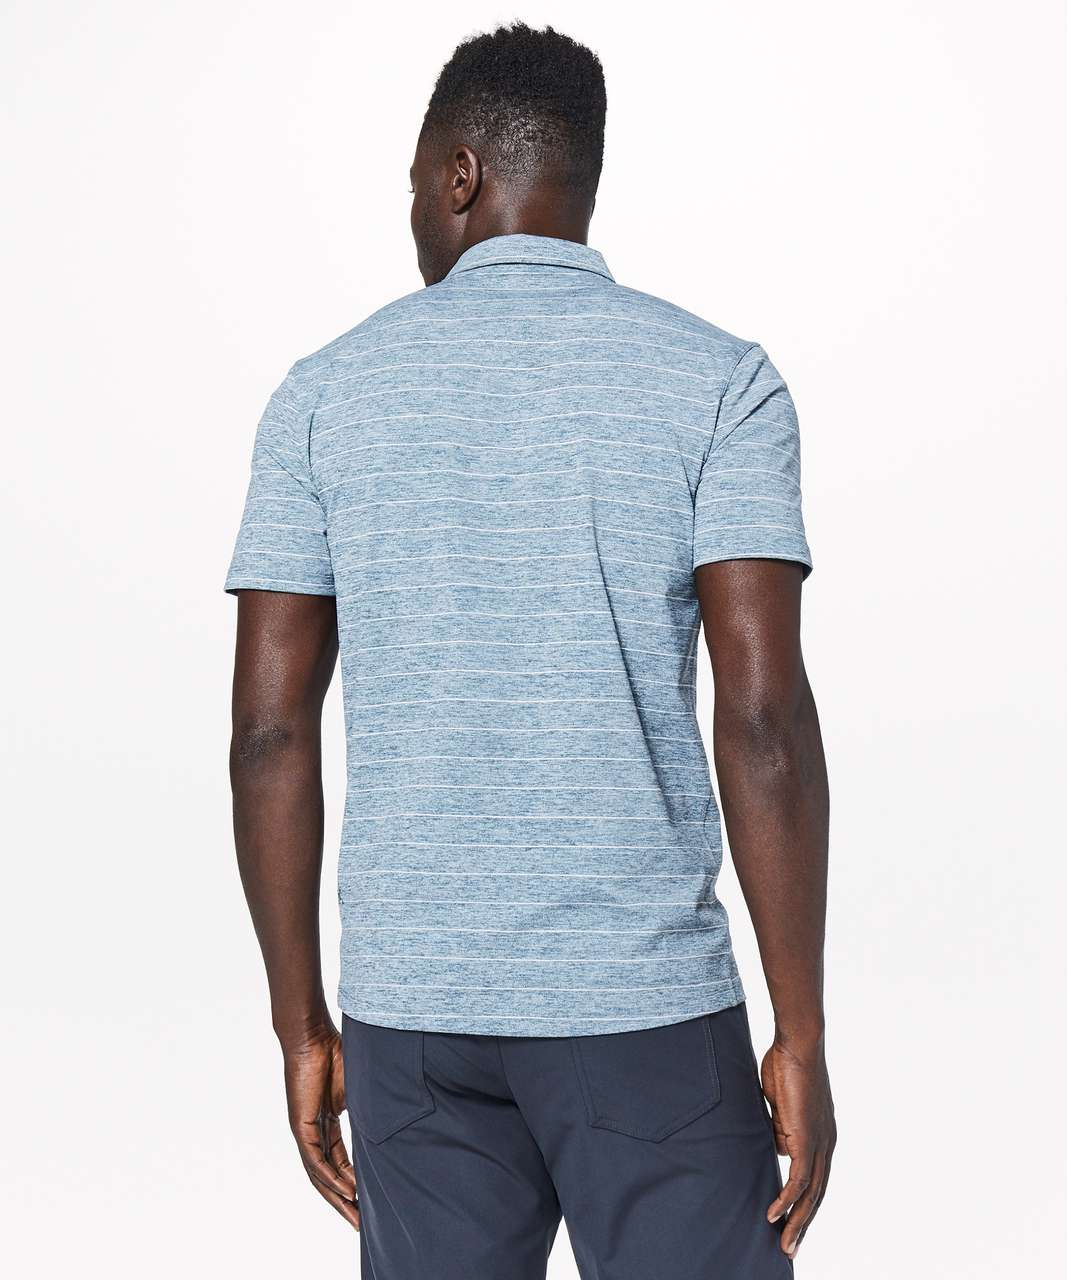 Lululemon Propel Polo - Short Serve Stripe Heathered Alberta Lake White